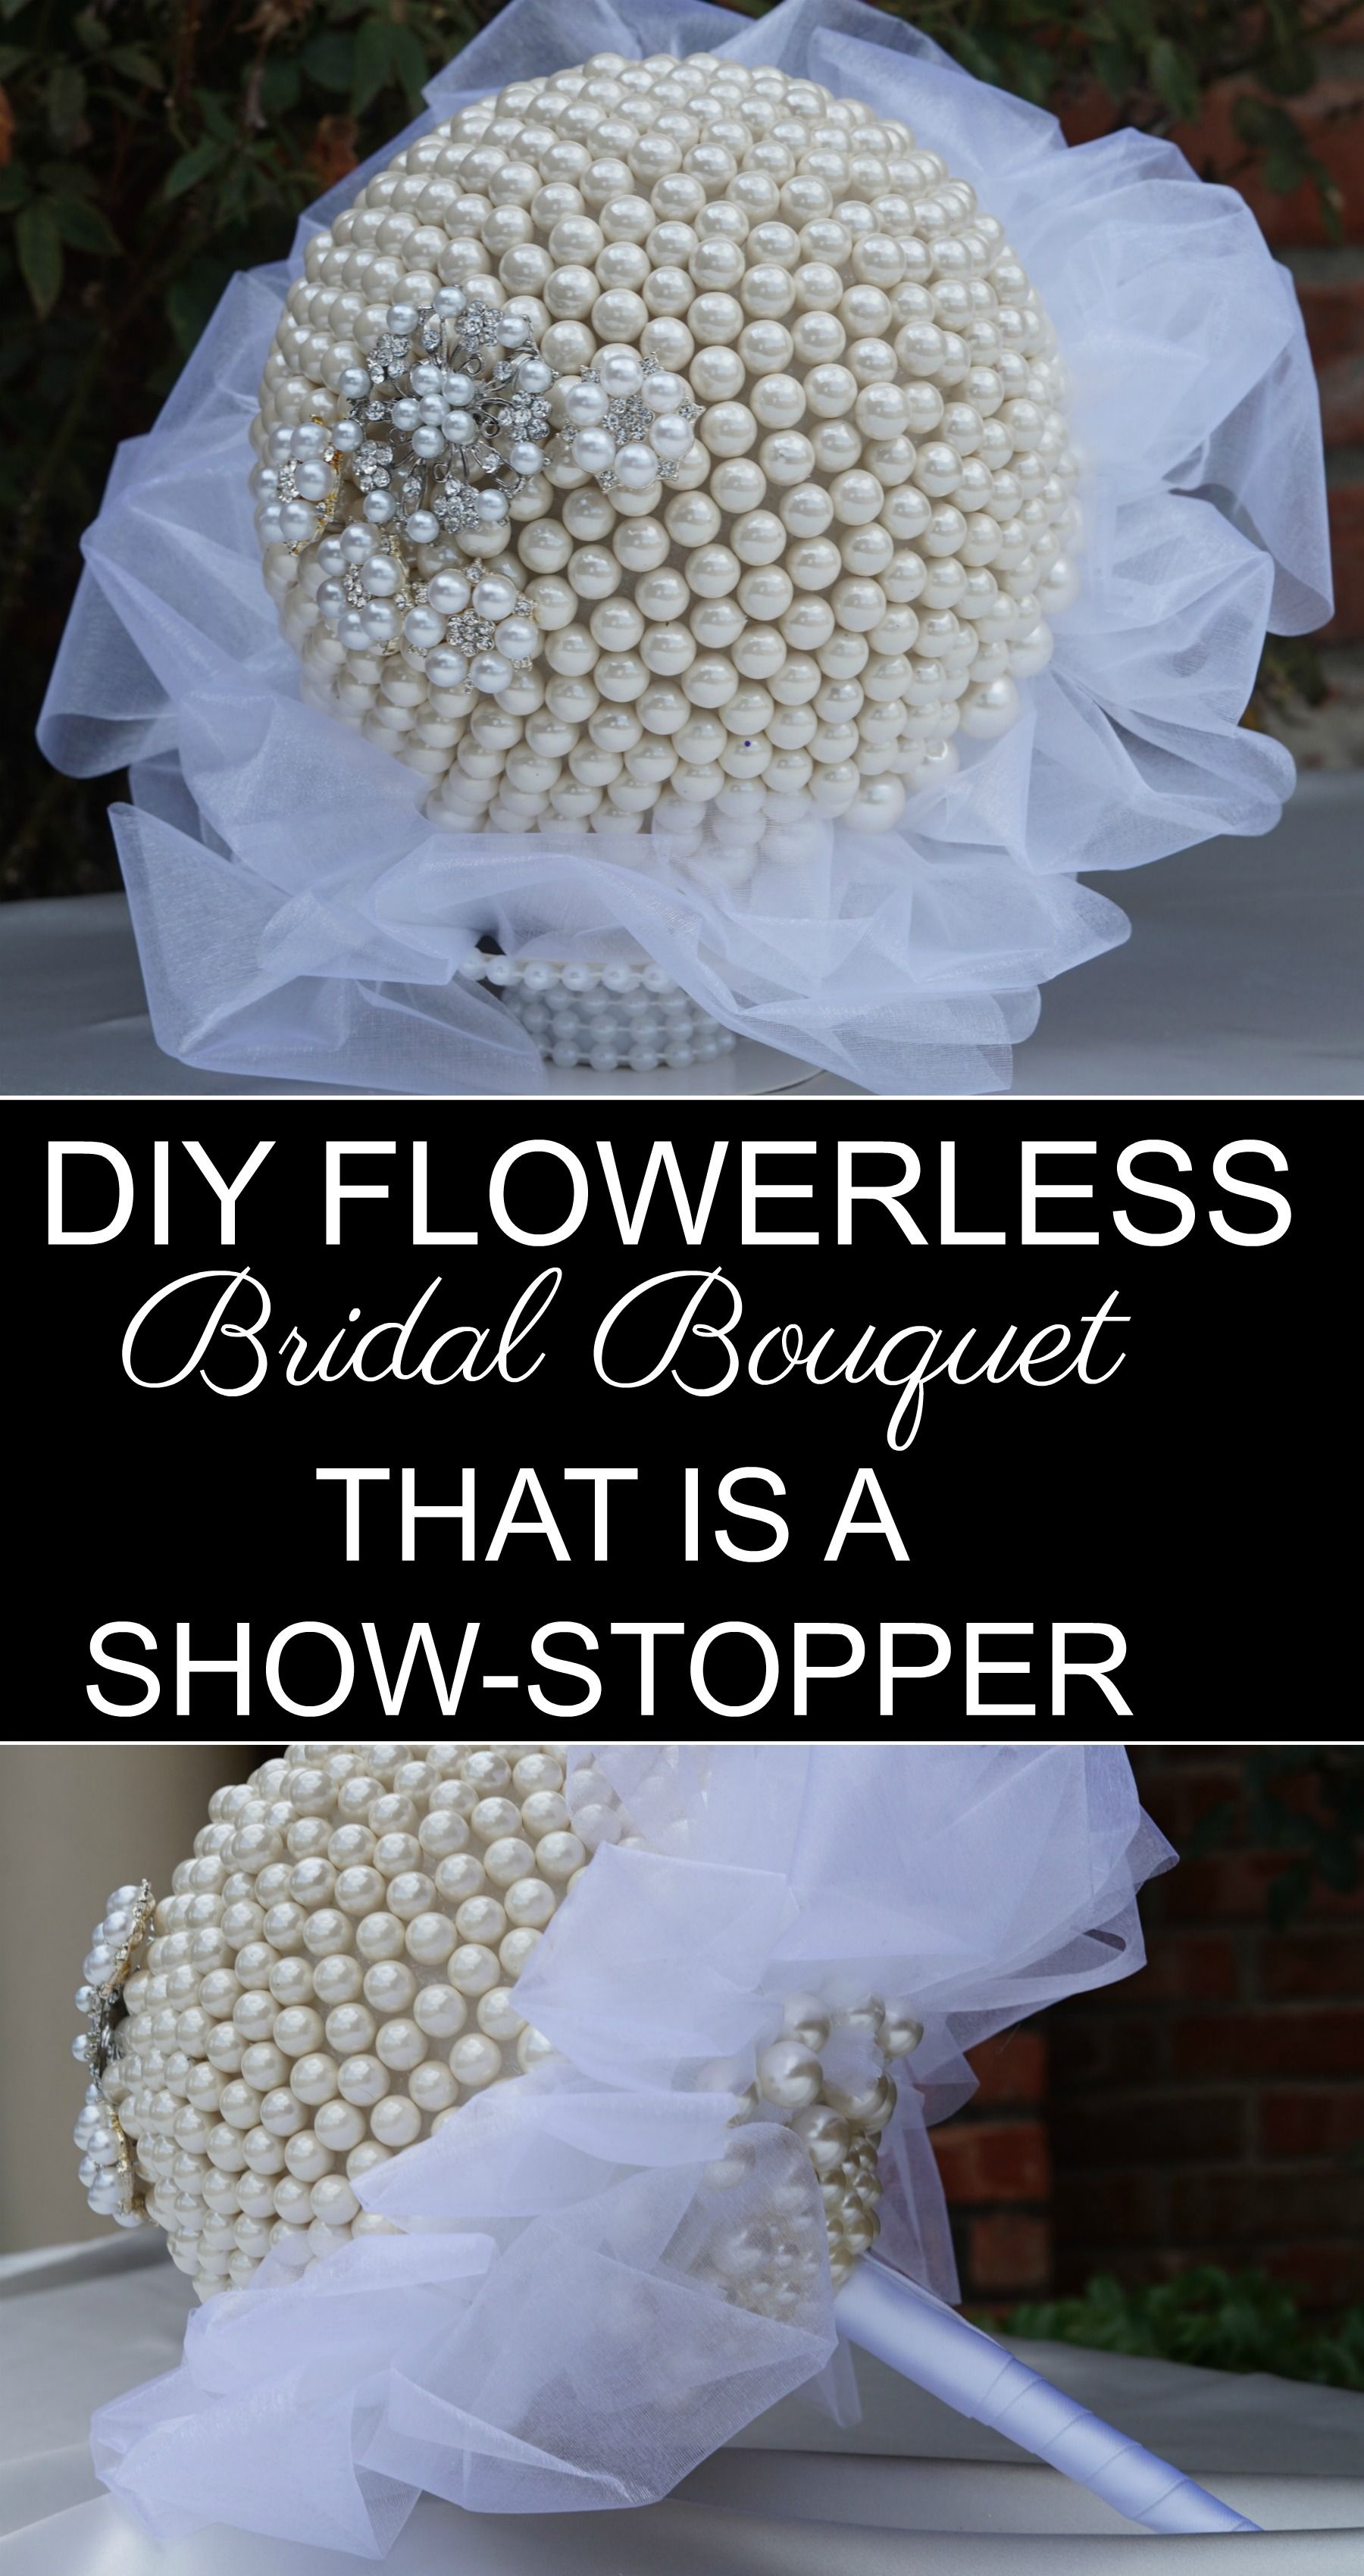 Diy flowerless beautiful pearl bridal bouquet that is a show stopper